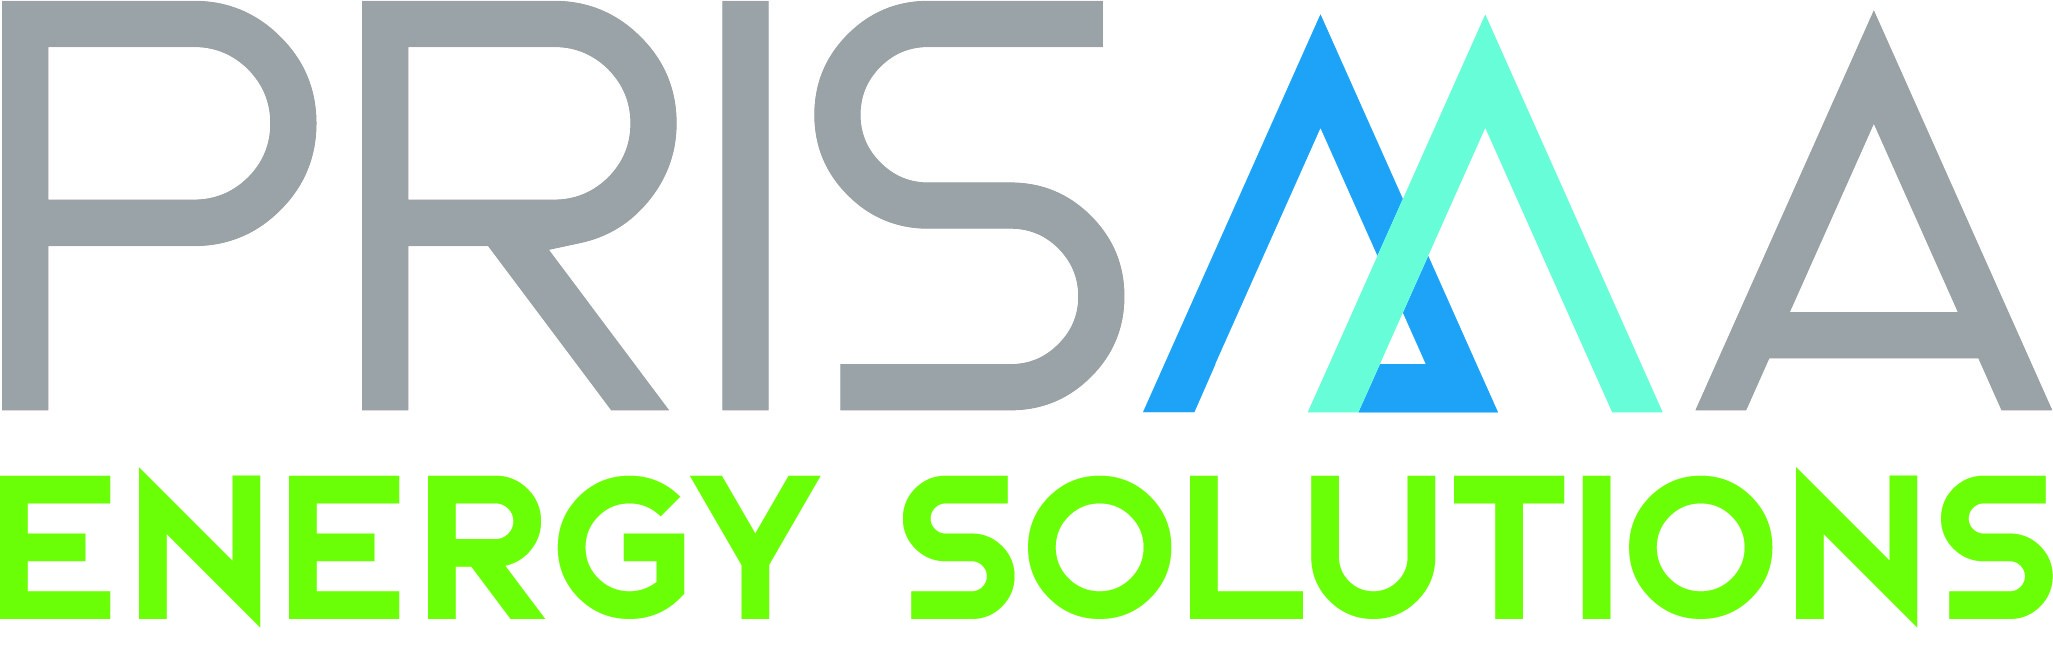 Prisma Energy Solutions, LLC.